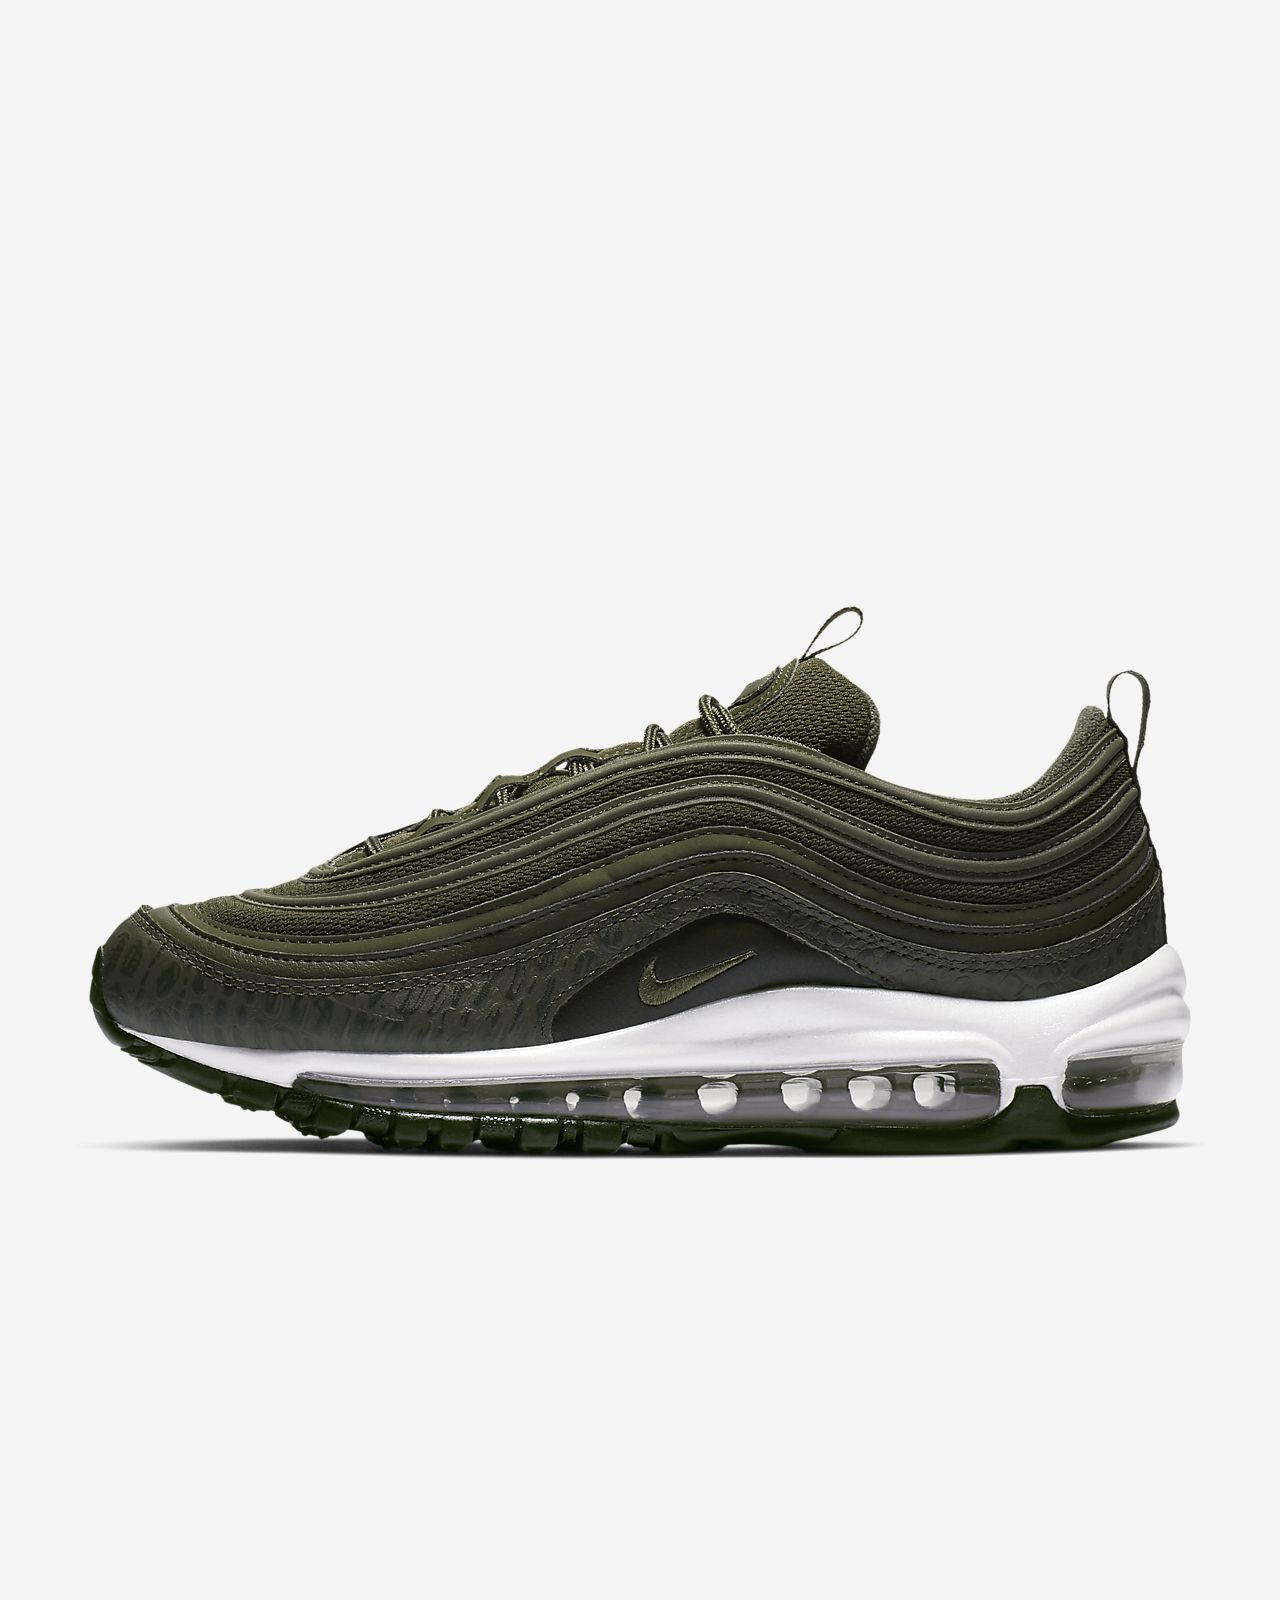 best website 7b1d2 0a514 ... Nike Air Max 97 LX Zapatillas - Mujer